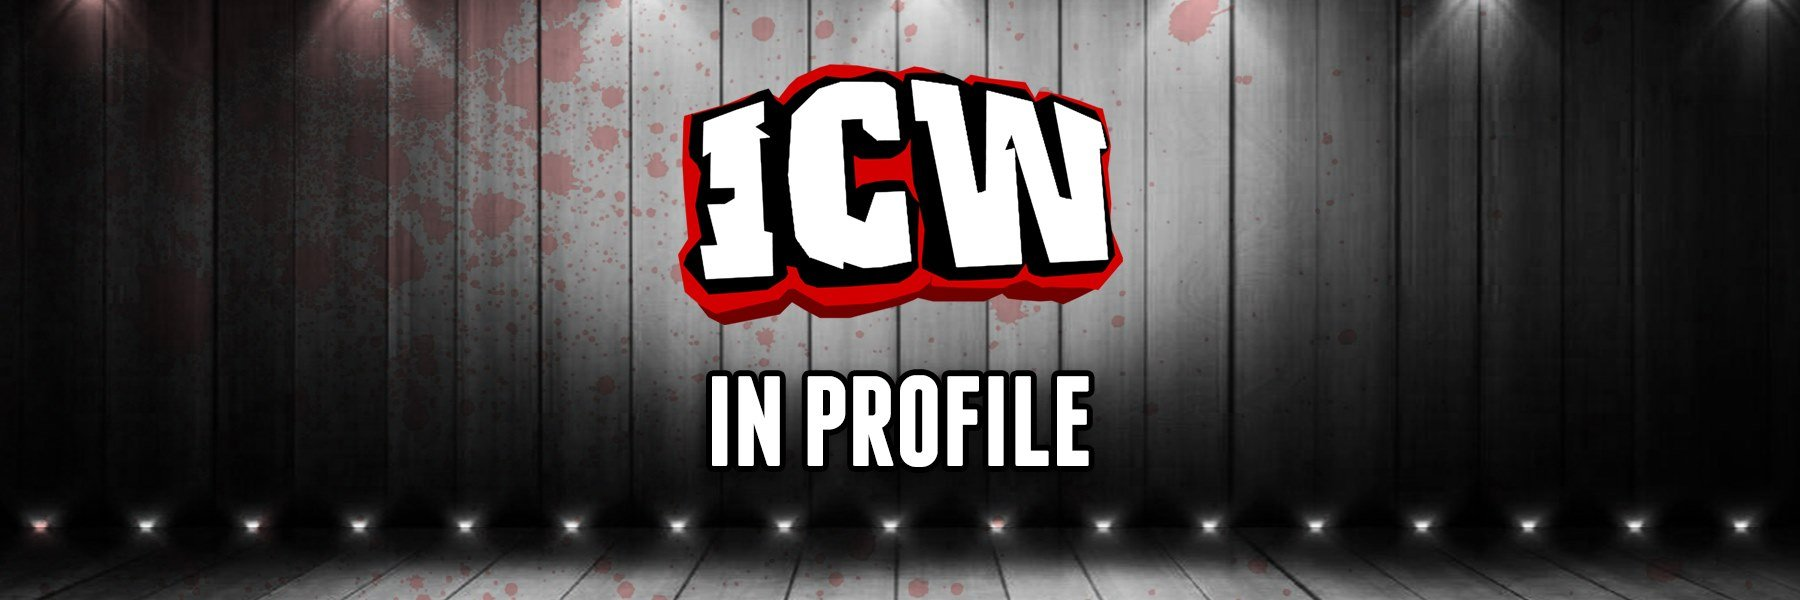 In-depth, long-form interviews with the top stars of ICW